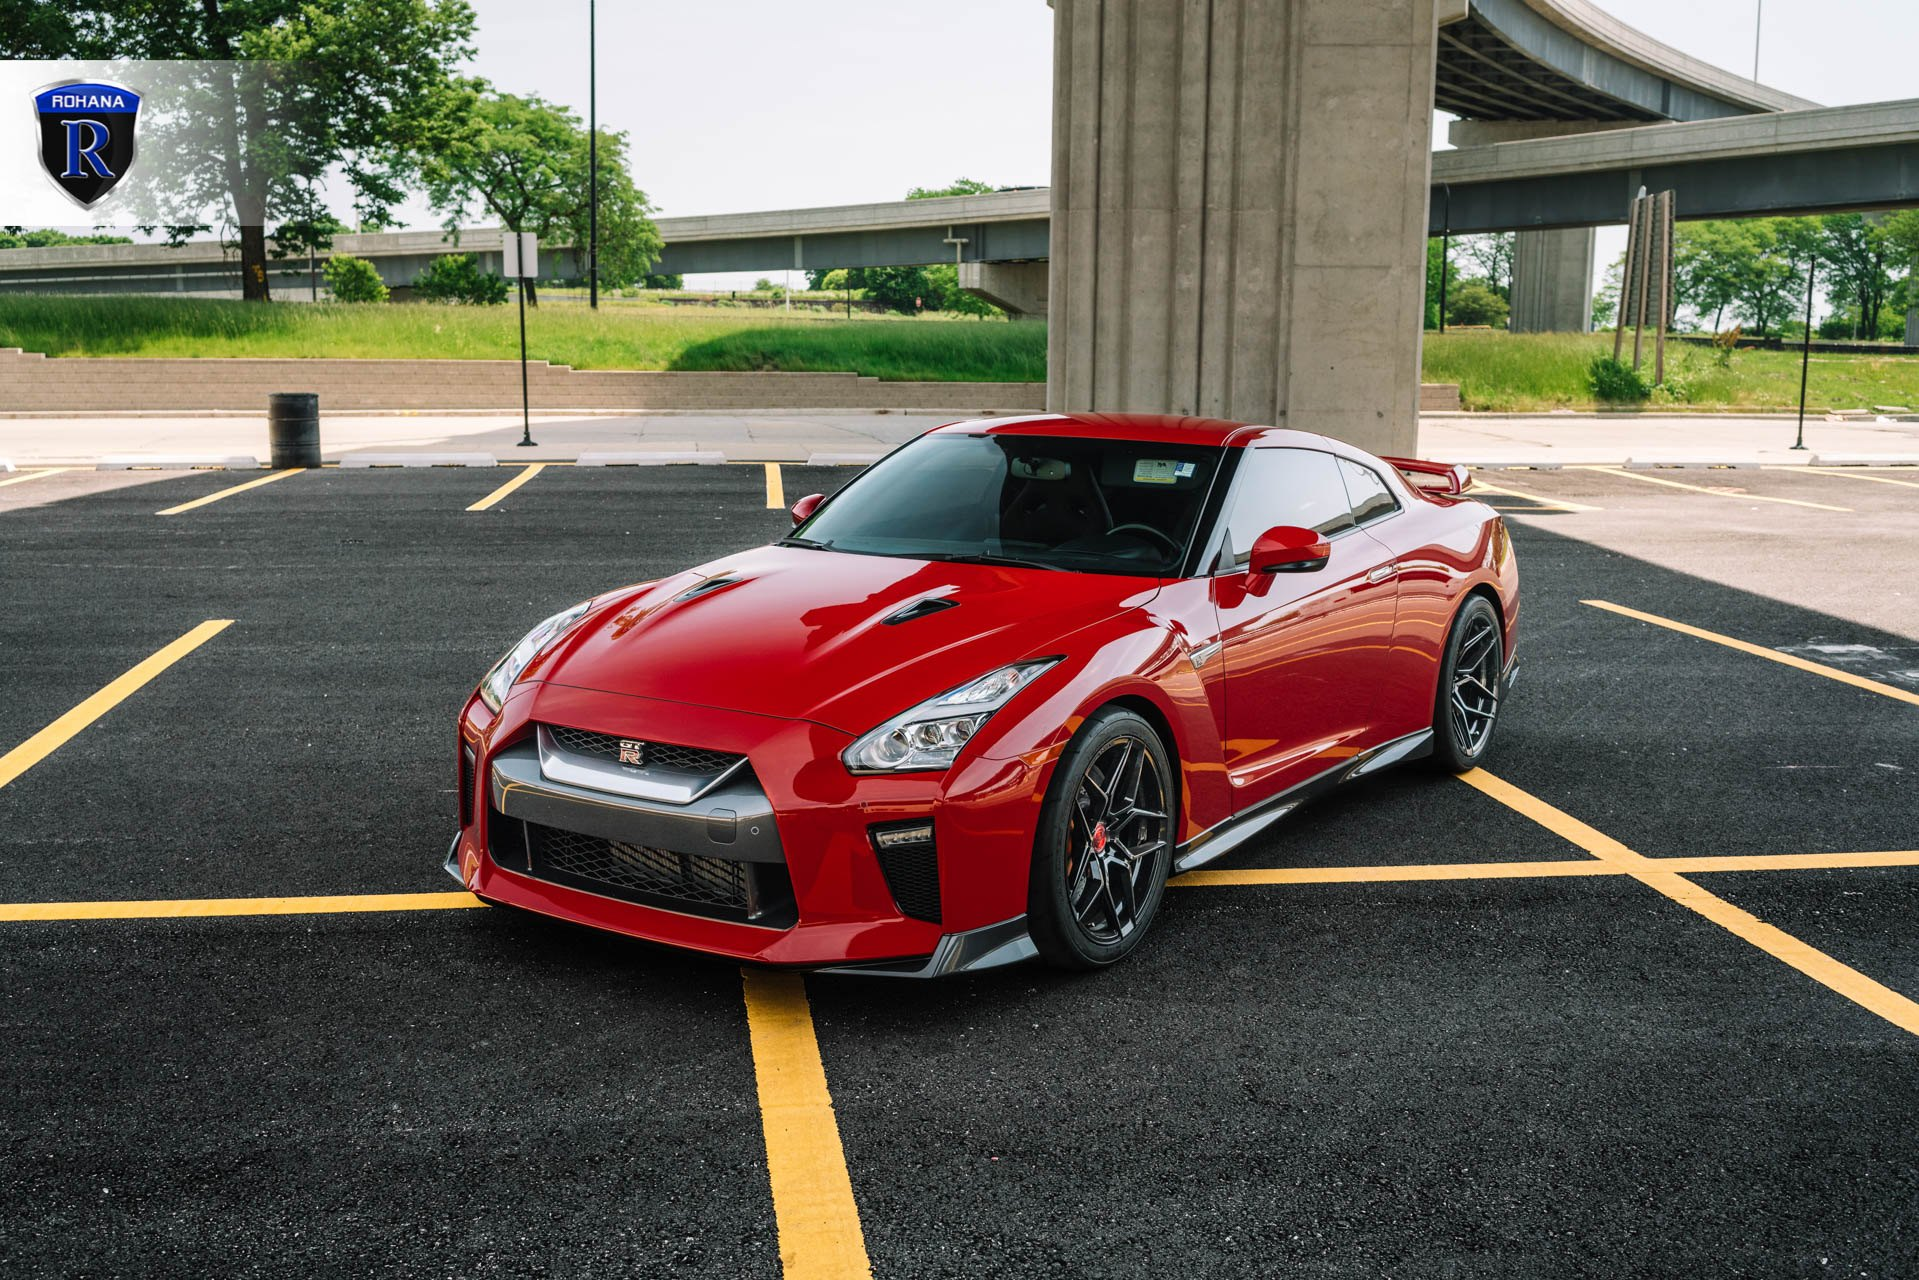 Custom Vented Hood on Red Nissan GT-R - Photo by Rohana Wheels